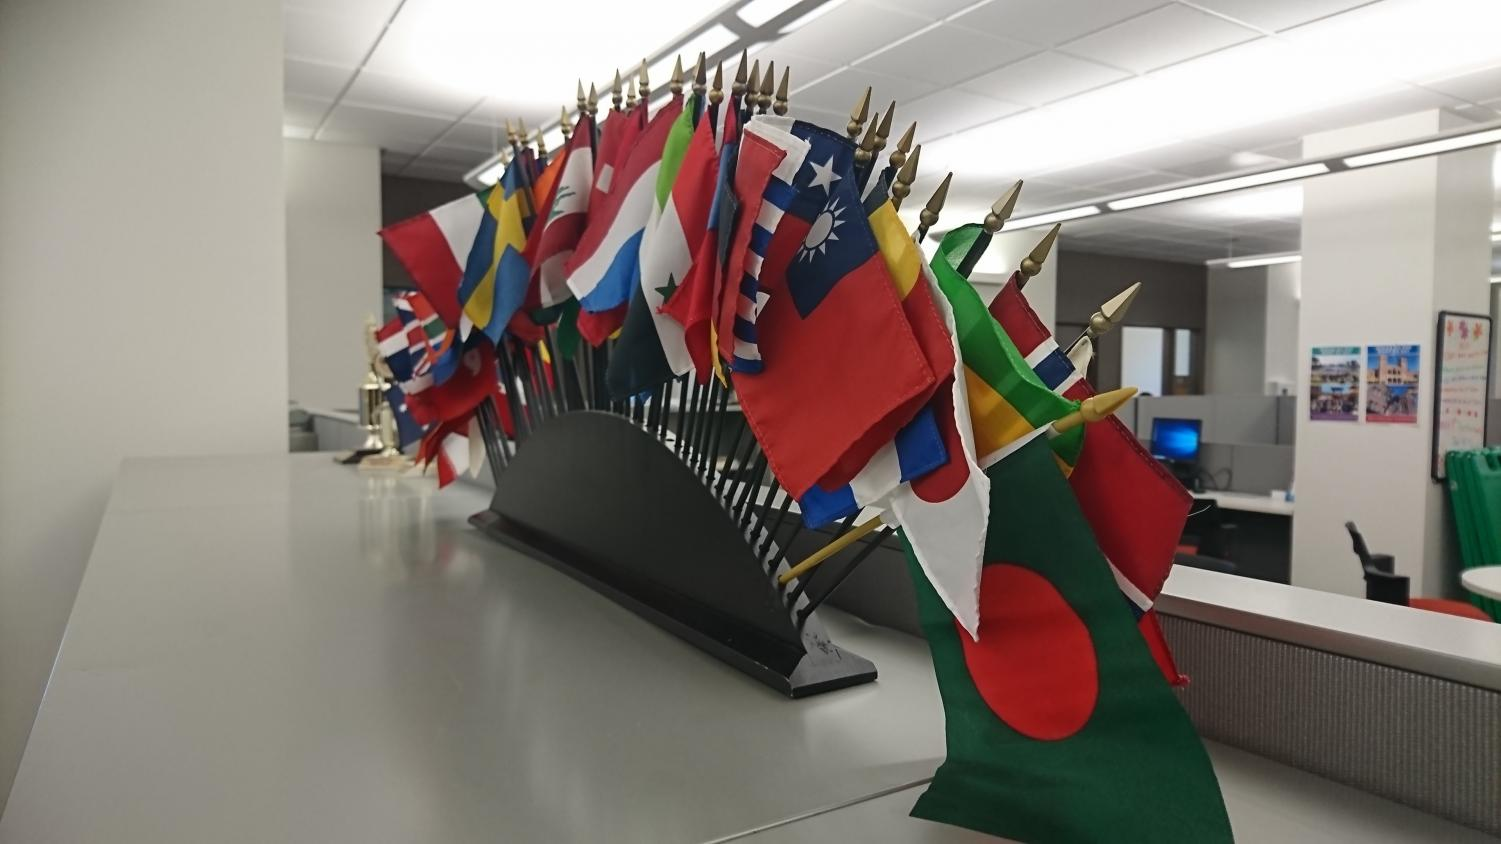 Welcoming students from all over the world.